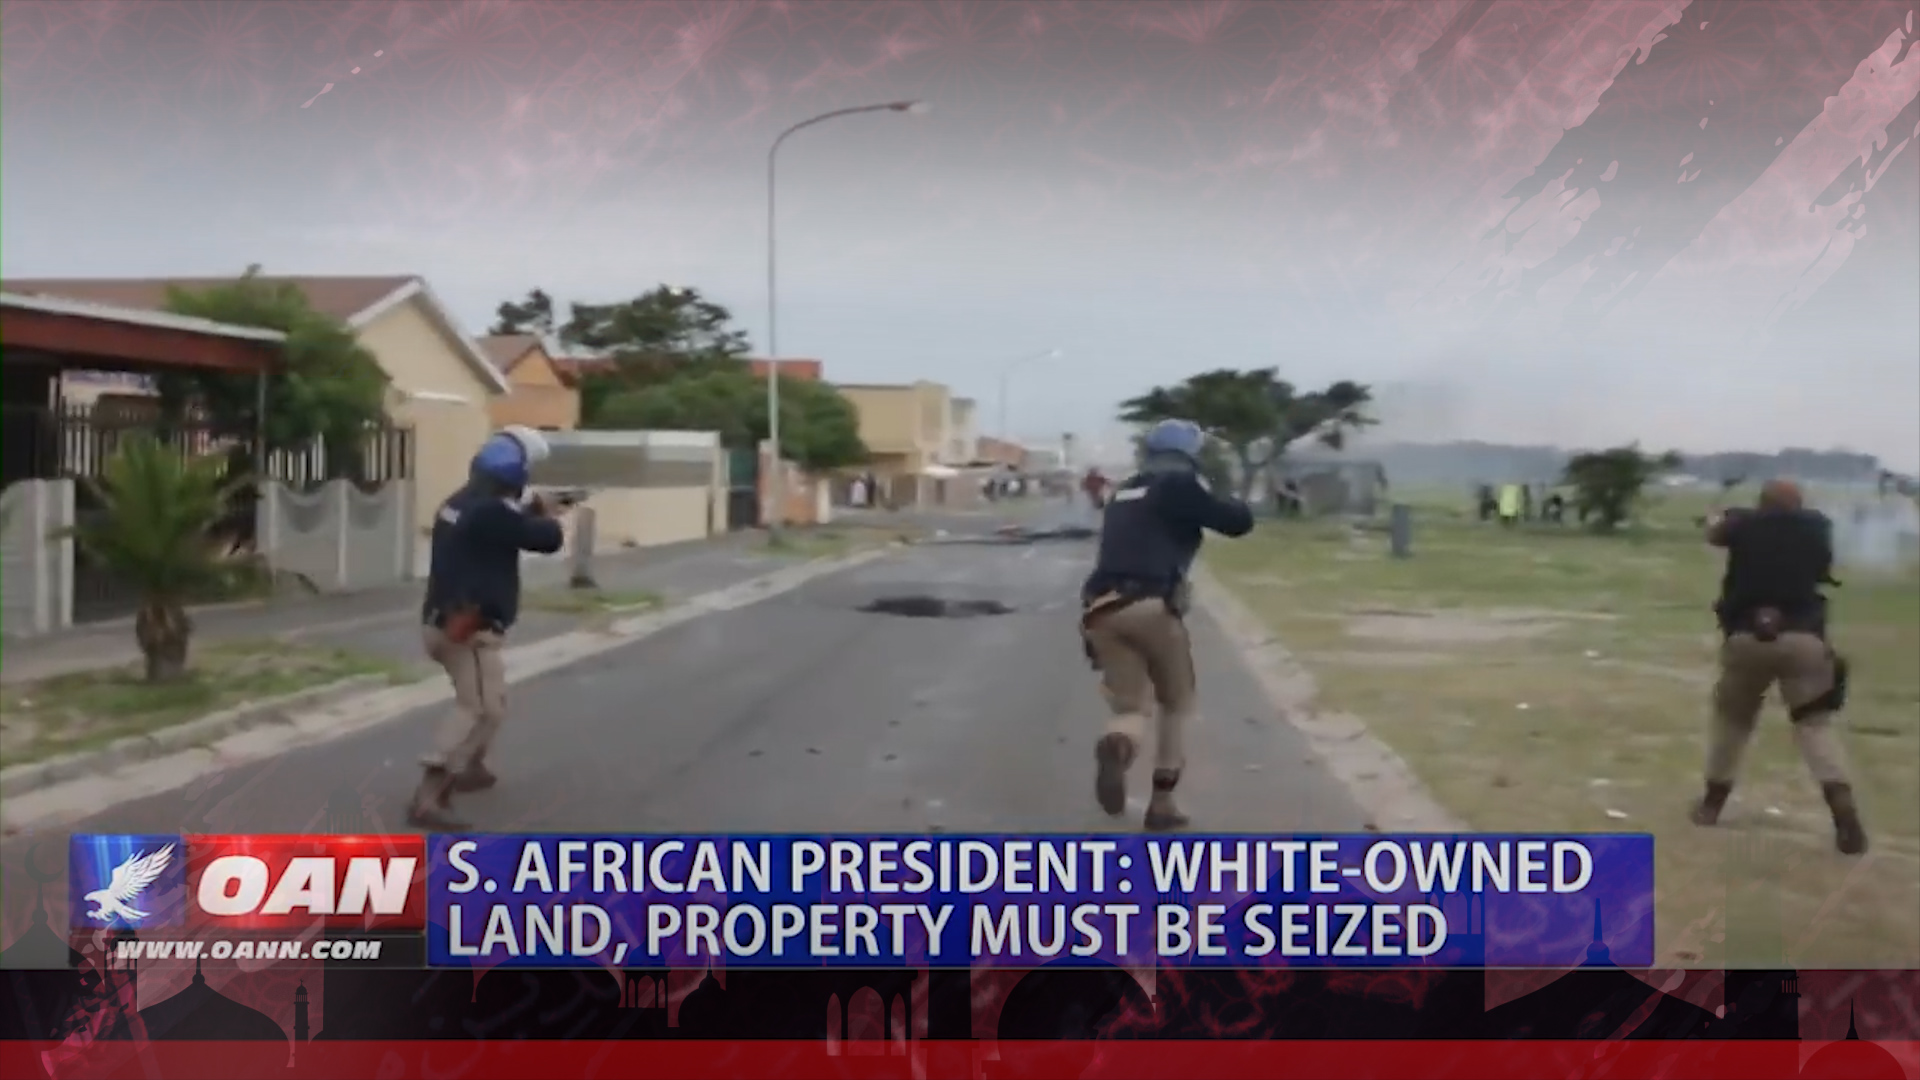 Top 10: South African president says white-owned land, property must be seized